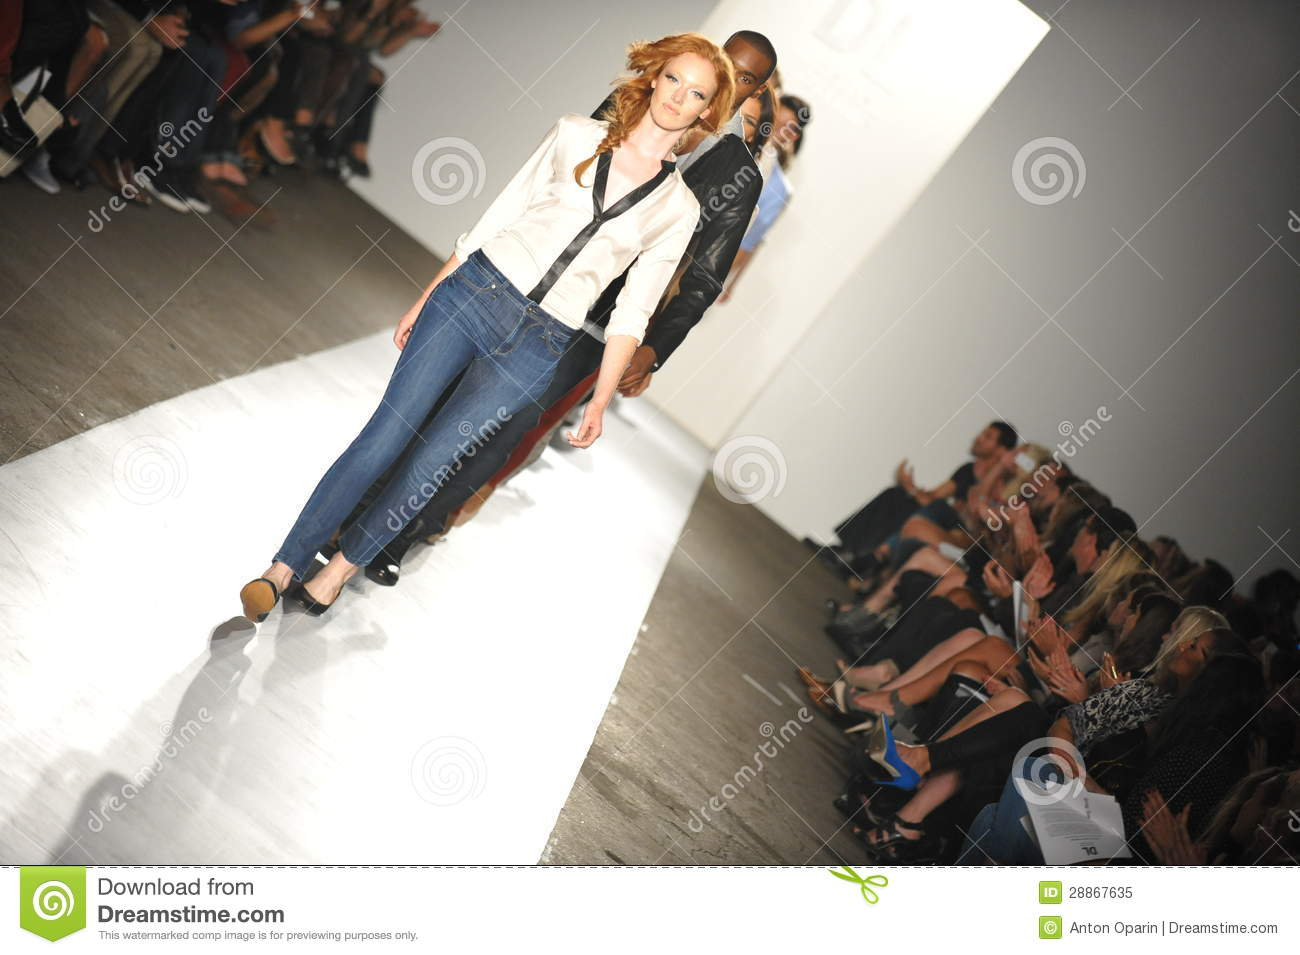 NEW YORK, NY - SEPTEMBER 05: A models walk the runway at the DL 1961 Premium Denim spring 2013 fashion show